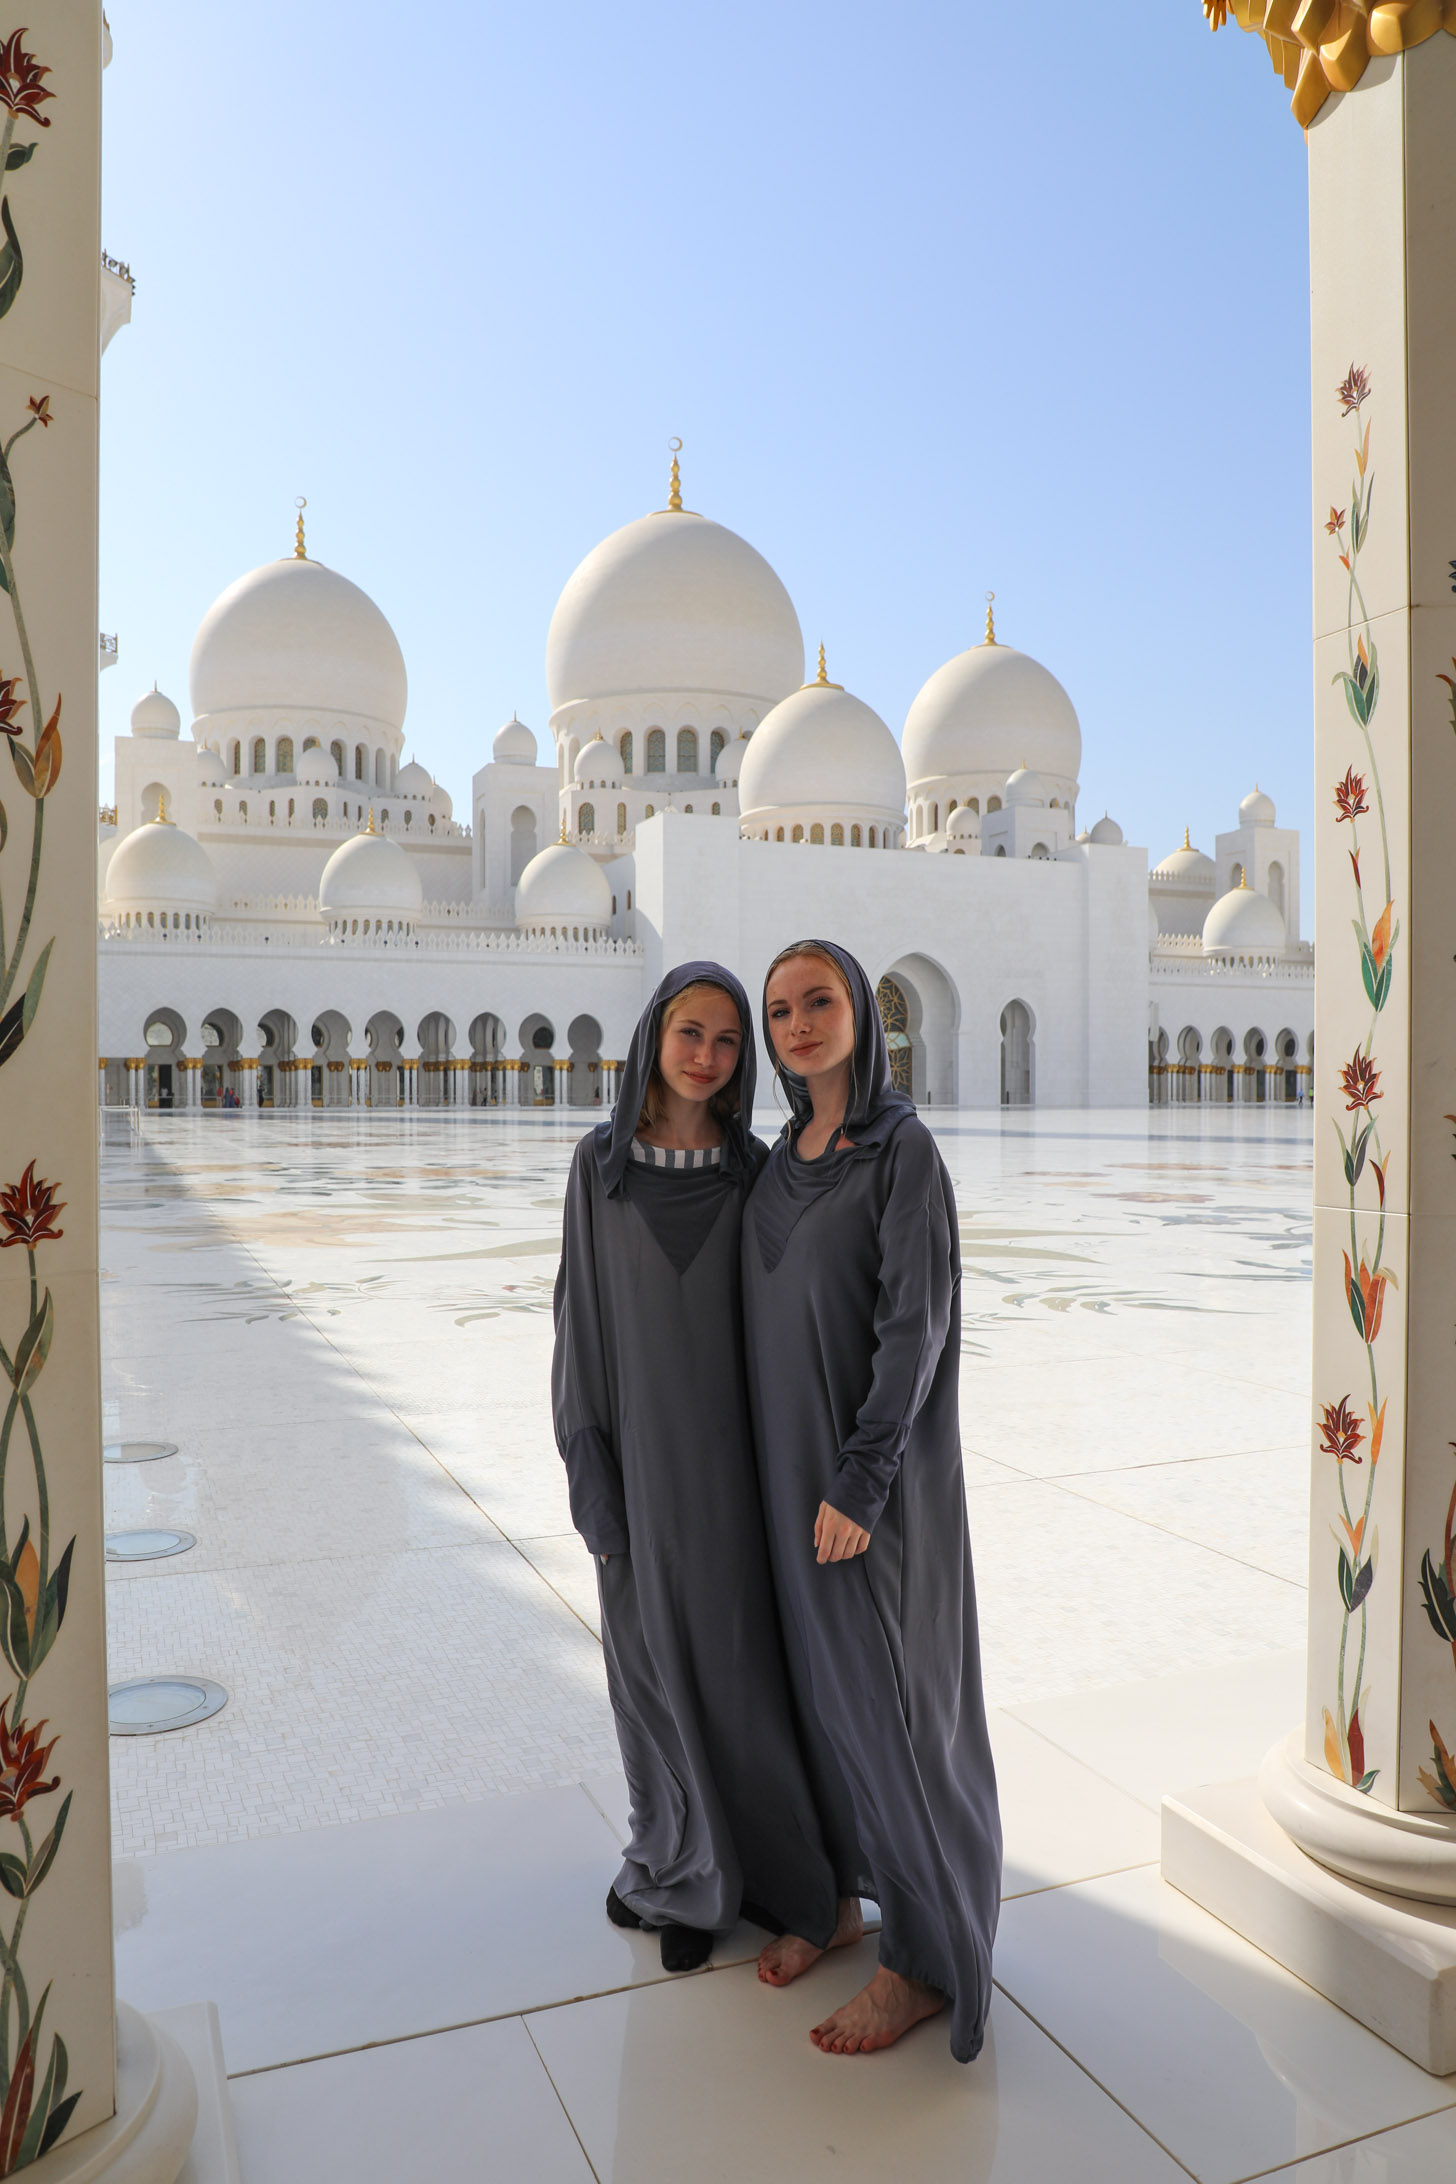 De Sheikh Zayed Grand Mosque in Abu Dhabi